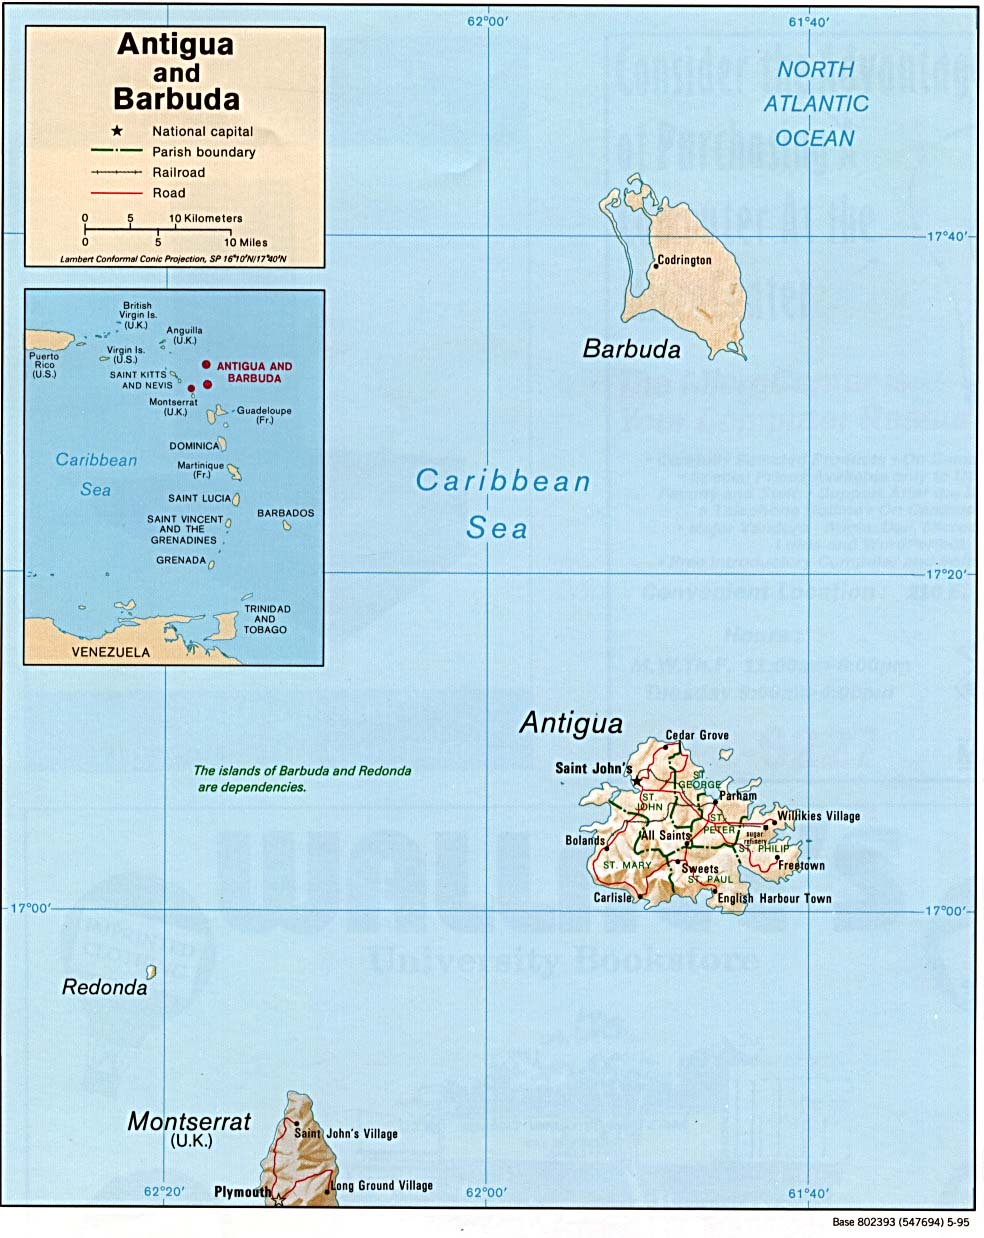 the history of antigua Antigua and barbuda is an independent commonwealth state in the eastern caribbean with some 365 beaches of clean turquoise waters, the lush tropical islands of antigua and barbuda are an inviting paradise and considered to be one of the most beautiful places in the world.